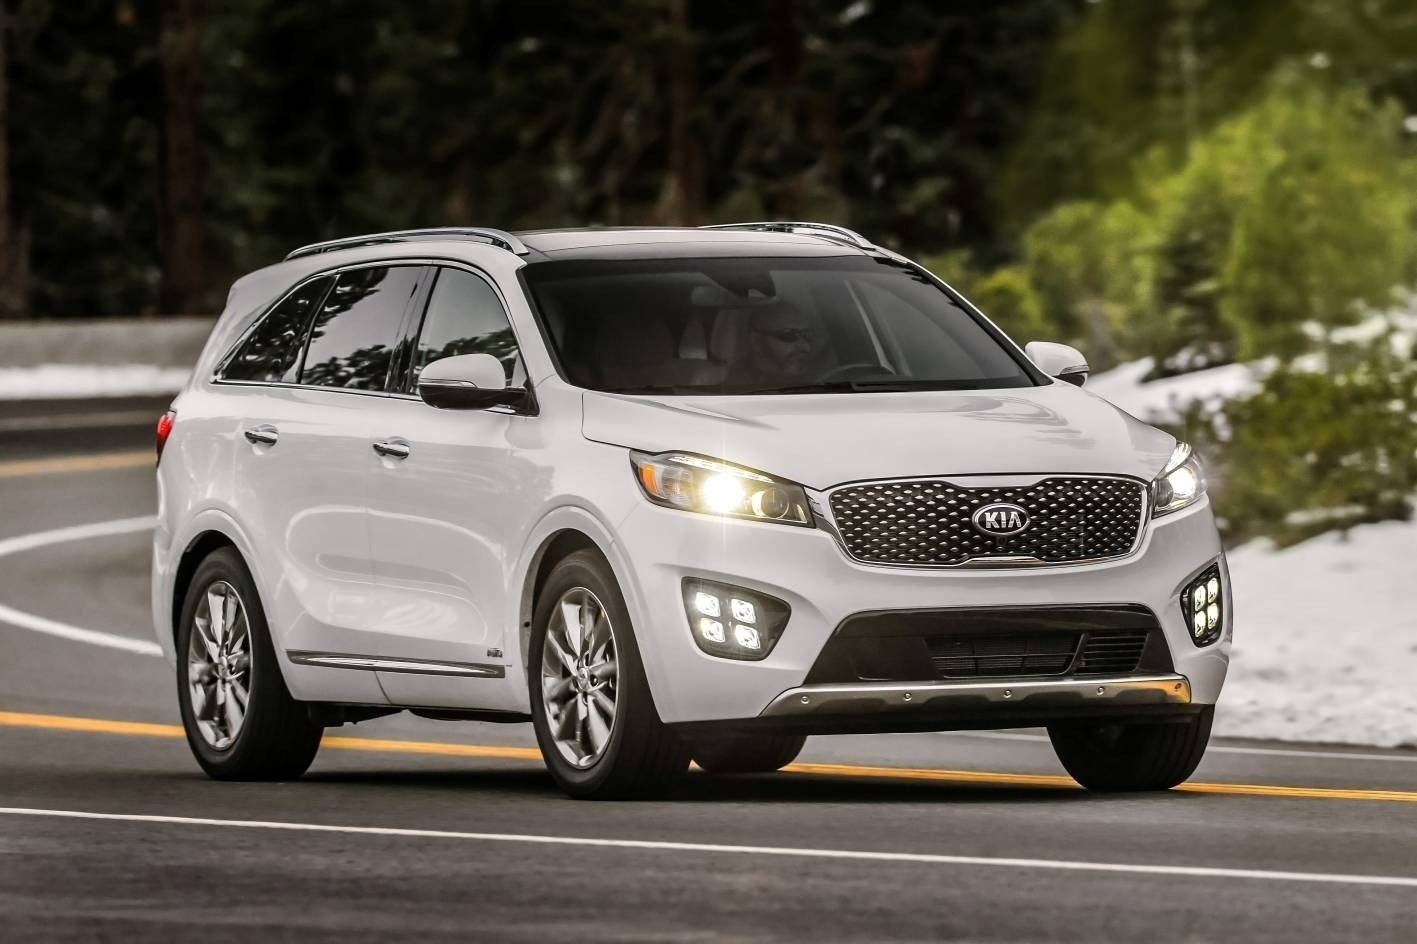 2019 Kia Sorento X Men Review Specs And Release Date Redesign Price And Review Concept Redesign And Review Release Date Price And Re Vehicles Kia S